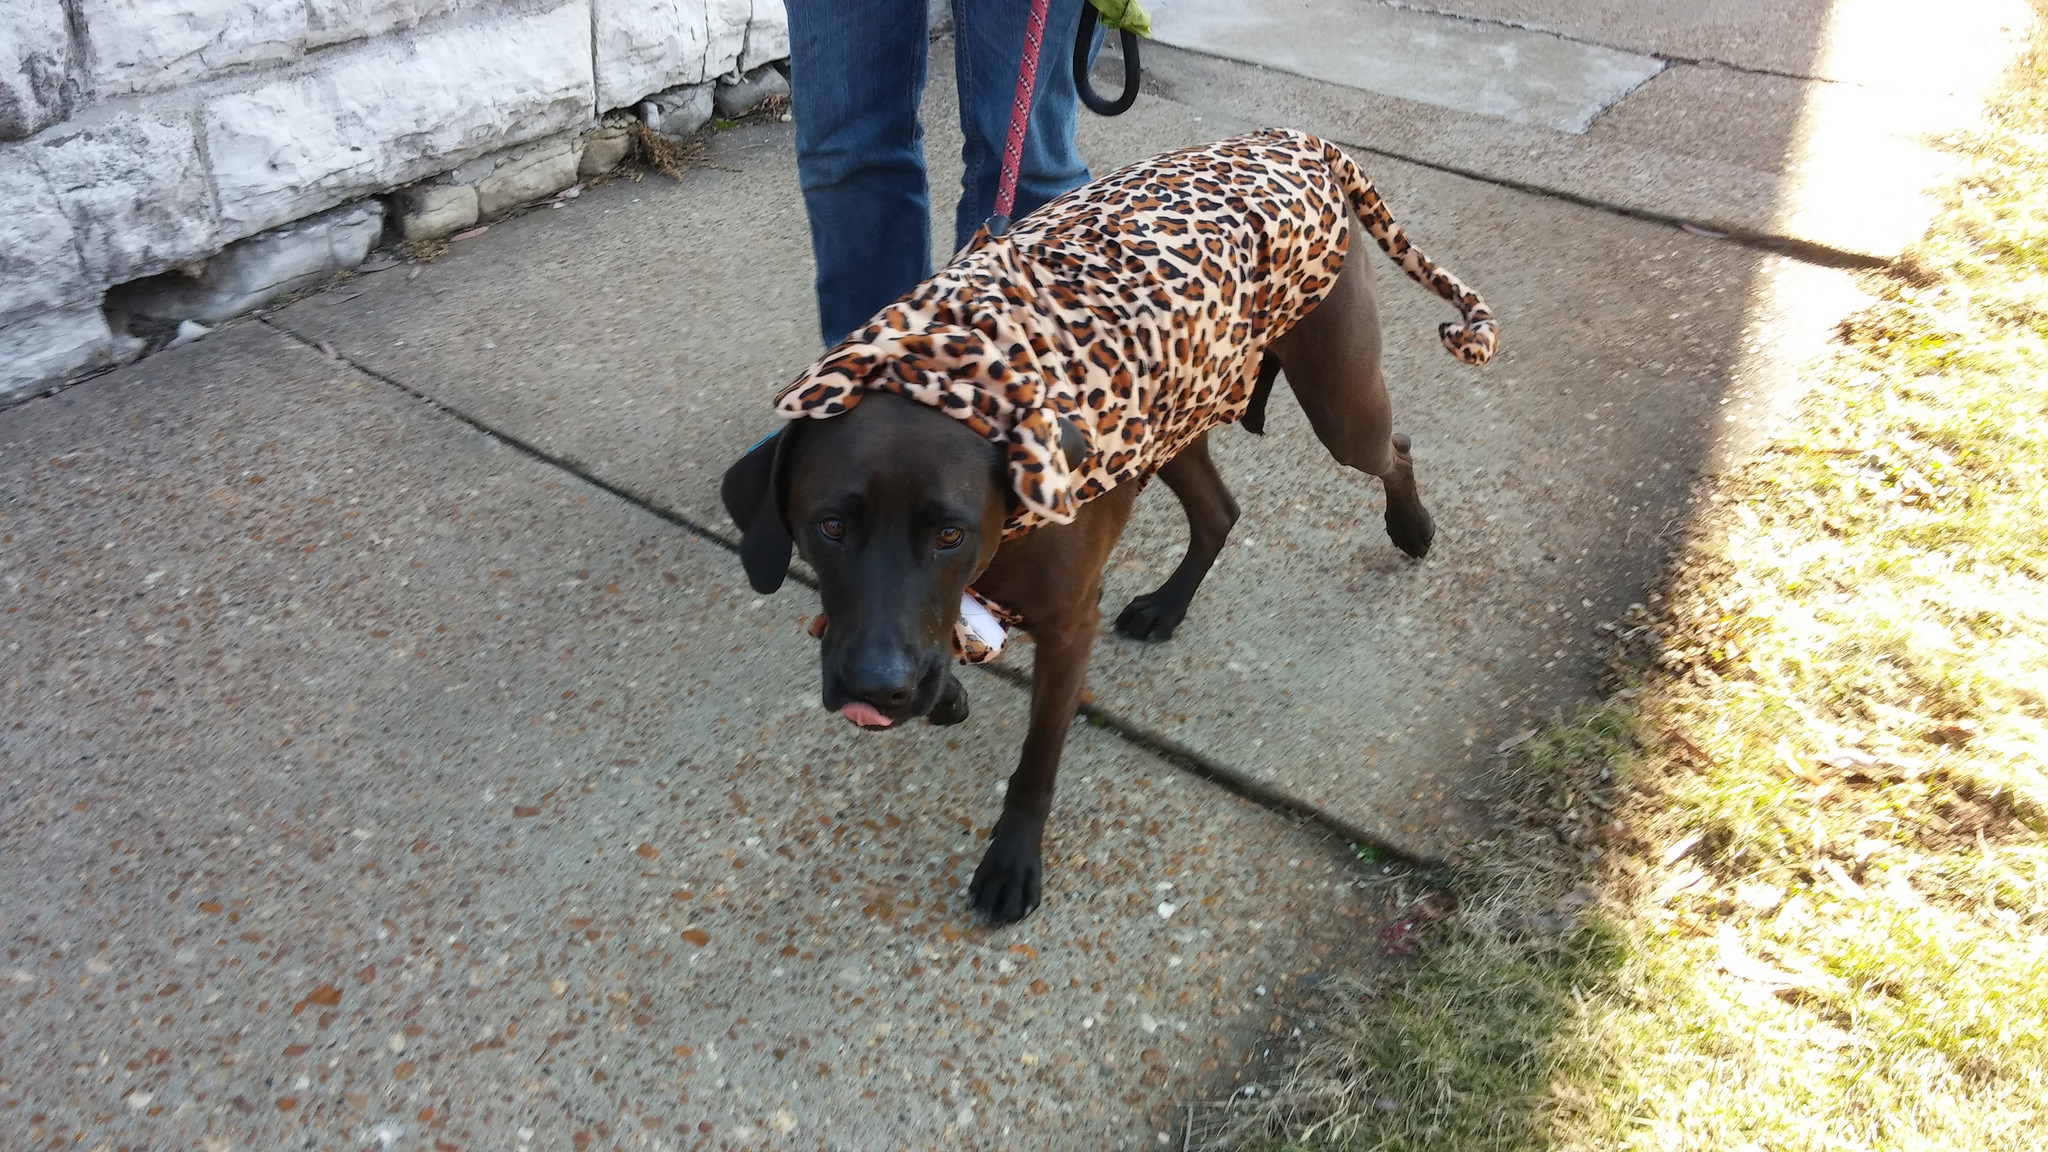 Hazel dressed a cheetah for the pet parade earlier this month.